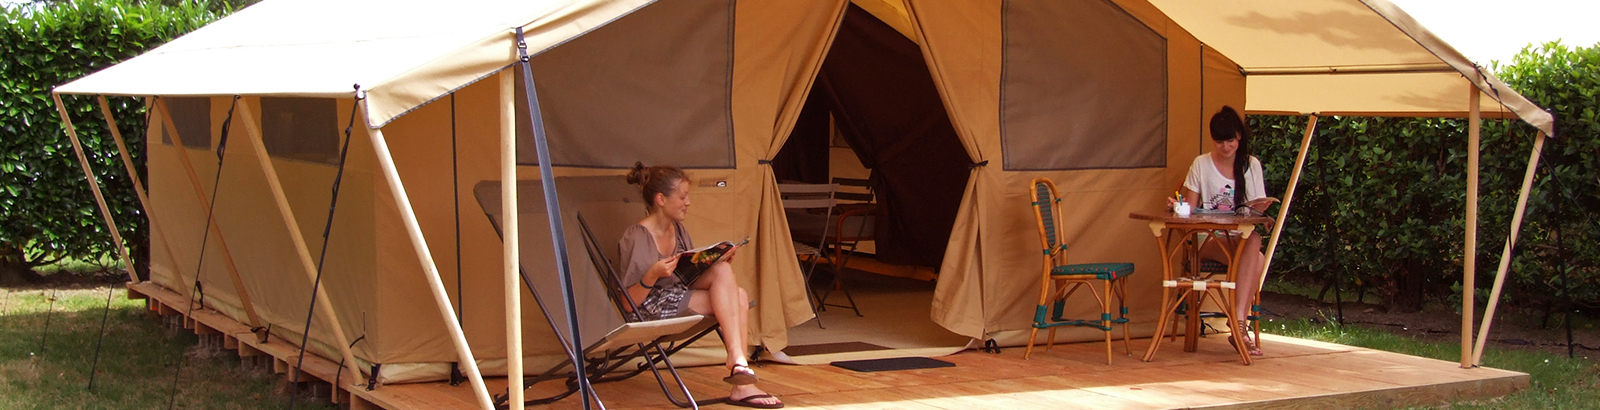 Comfortable camping holidays in a Safari furnished tent